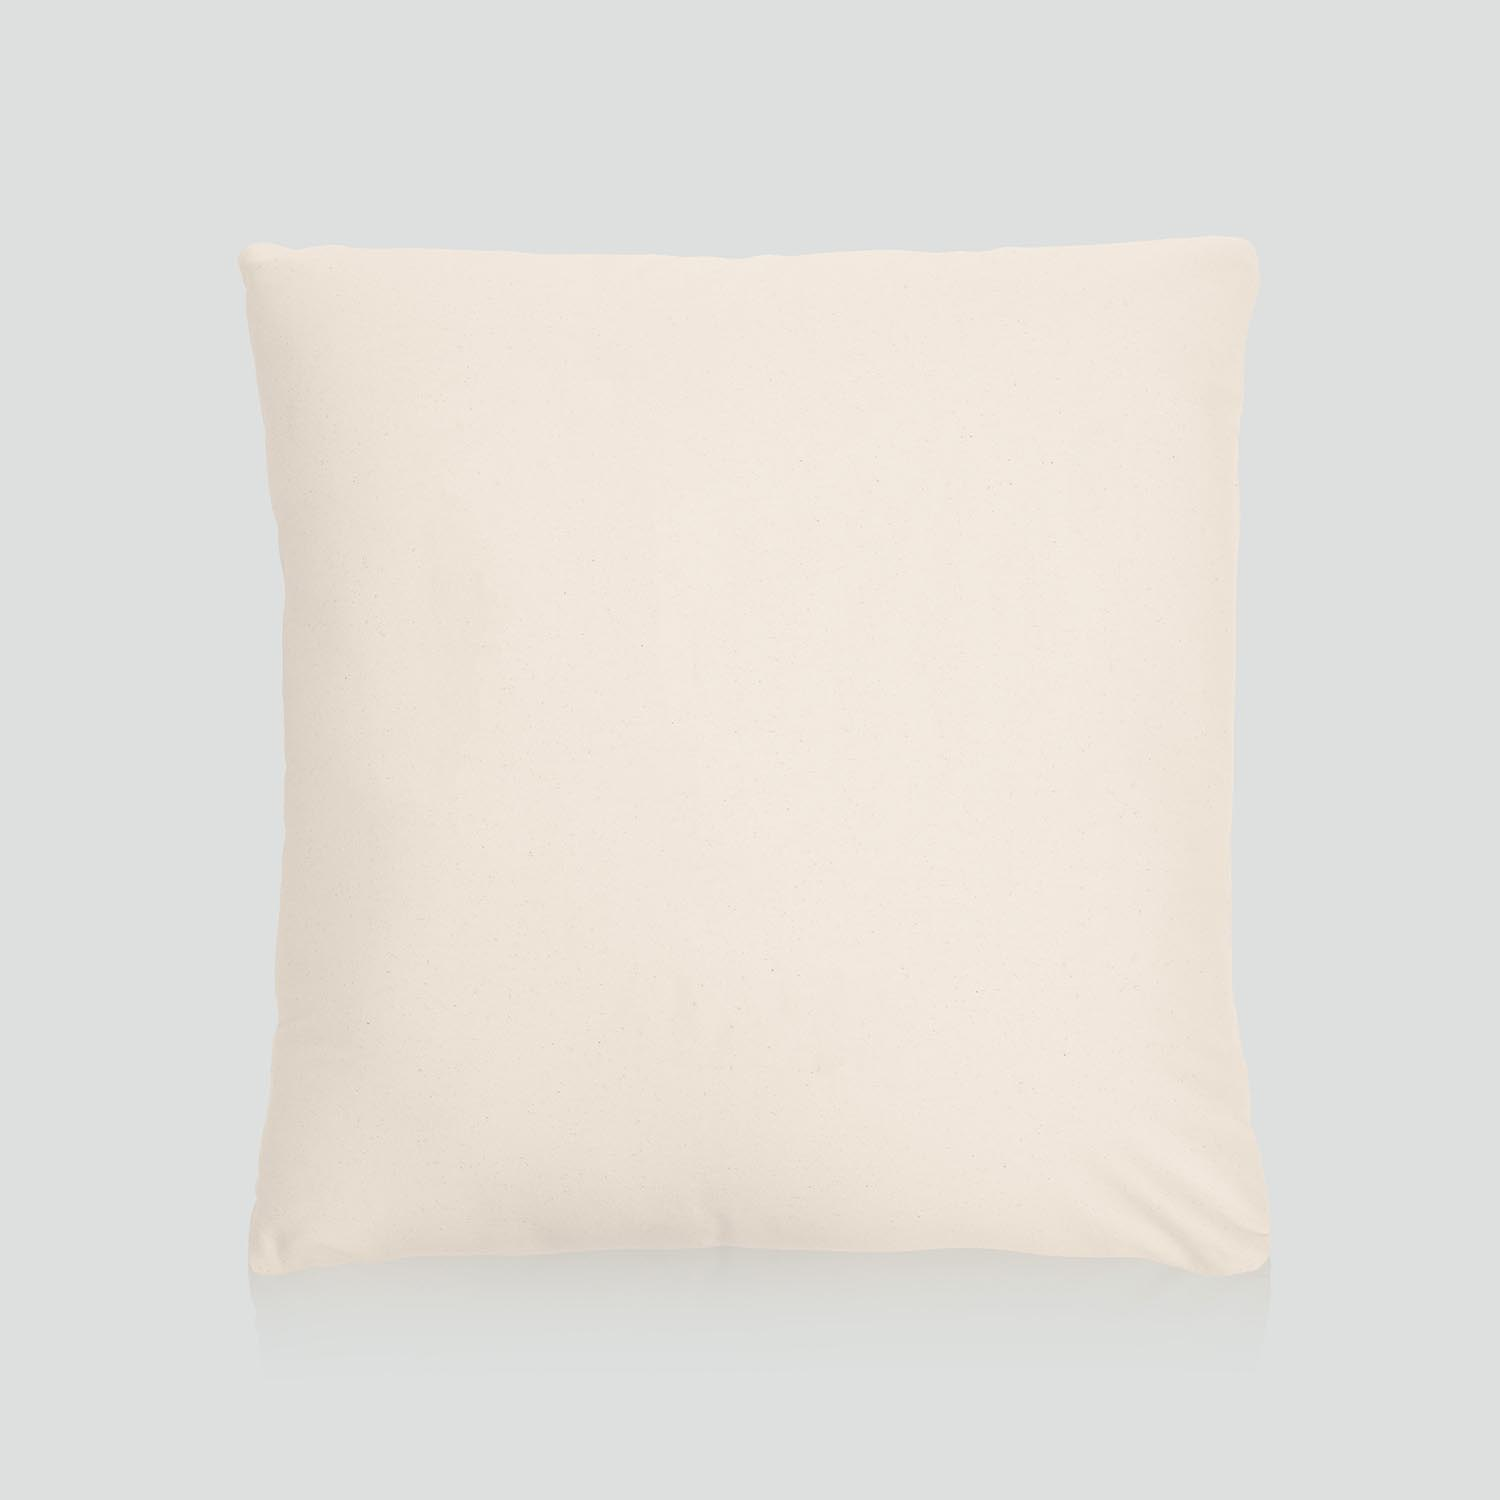 art as brown pillows pillow img parker foodiemommy textiles rockport parkerbrown